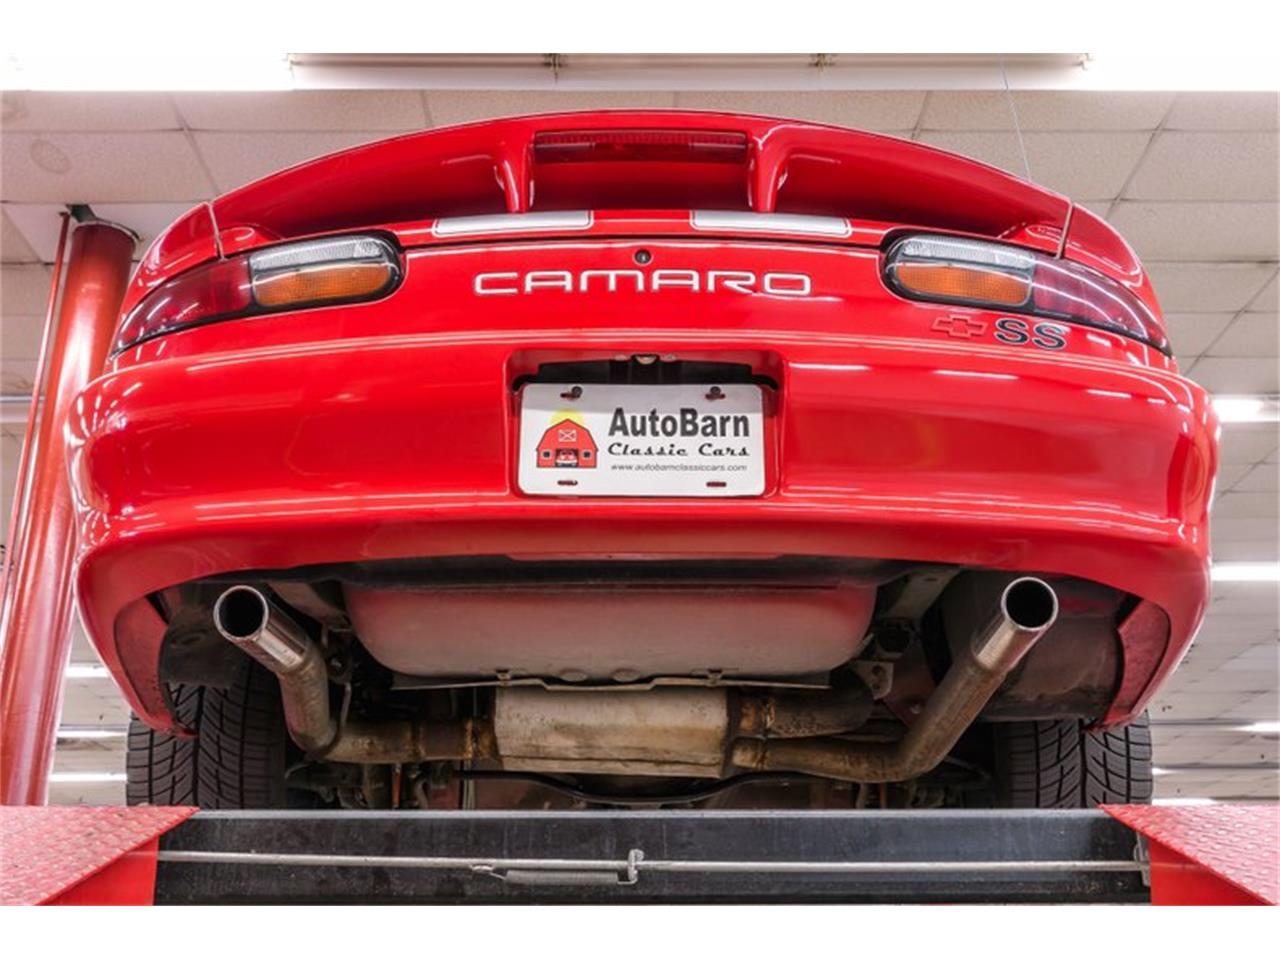 Large Picture of 2002 Chevrolet Camaro located in Concord North Carolina - $19,995.00 Offered by Autobarn Classic Cars - Q3LH